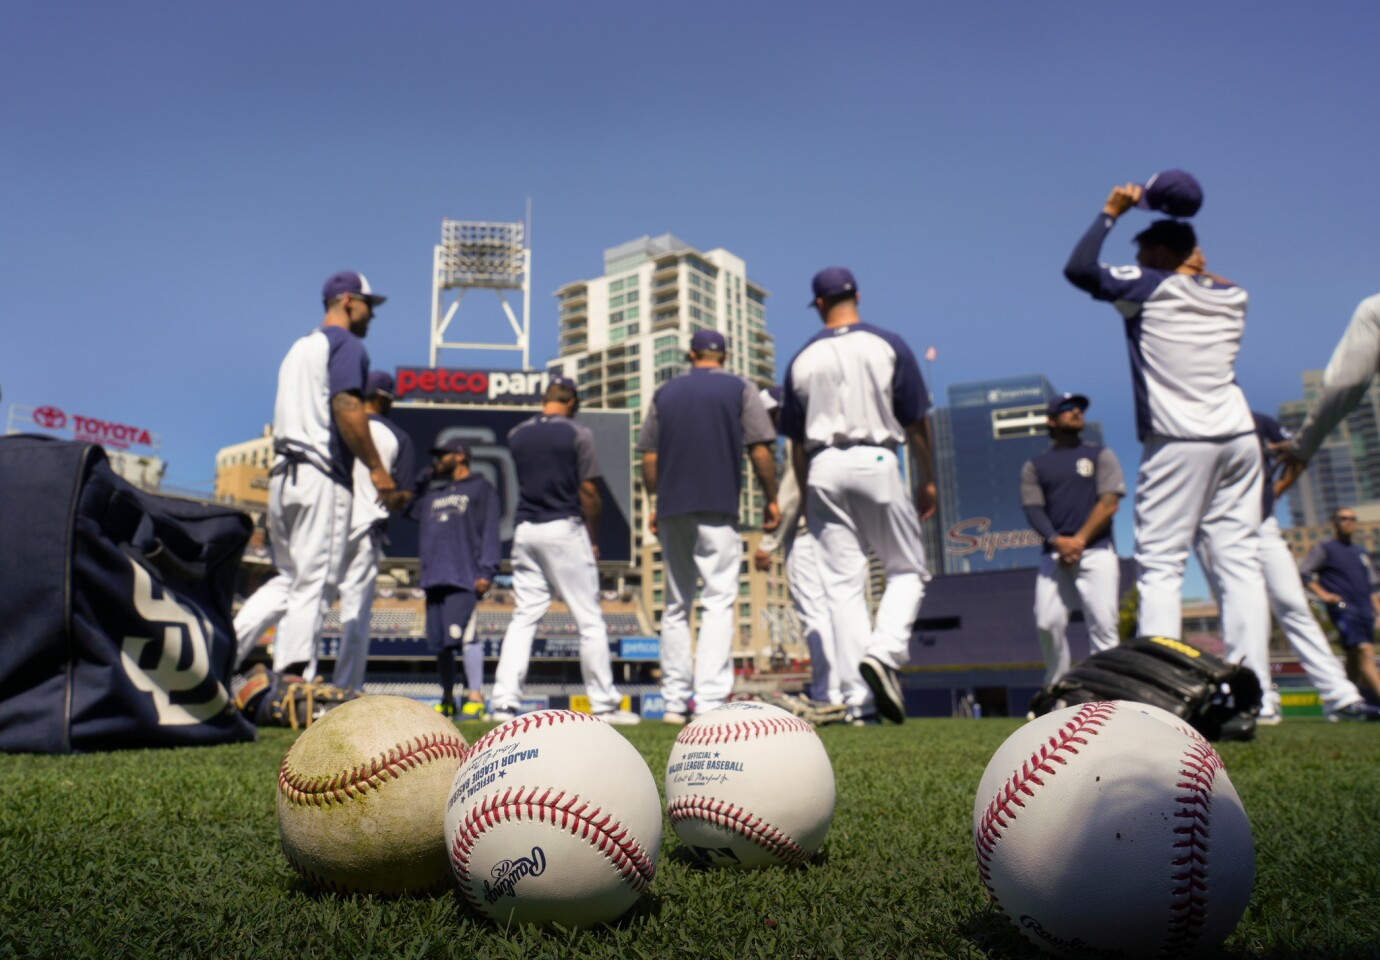 The eve before the Padres opening day at Petco Park